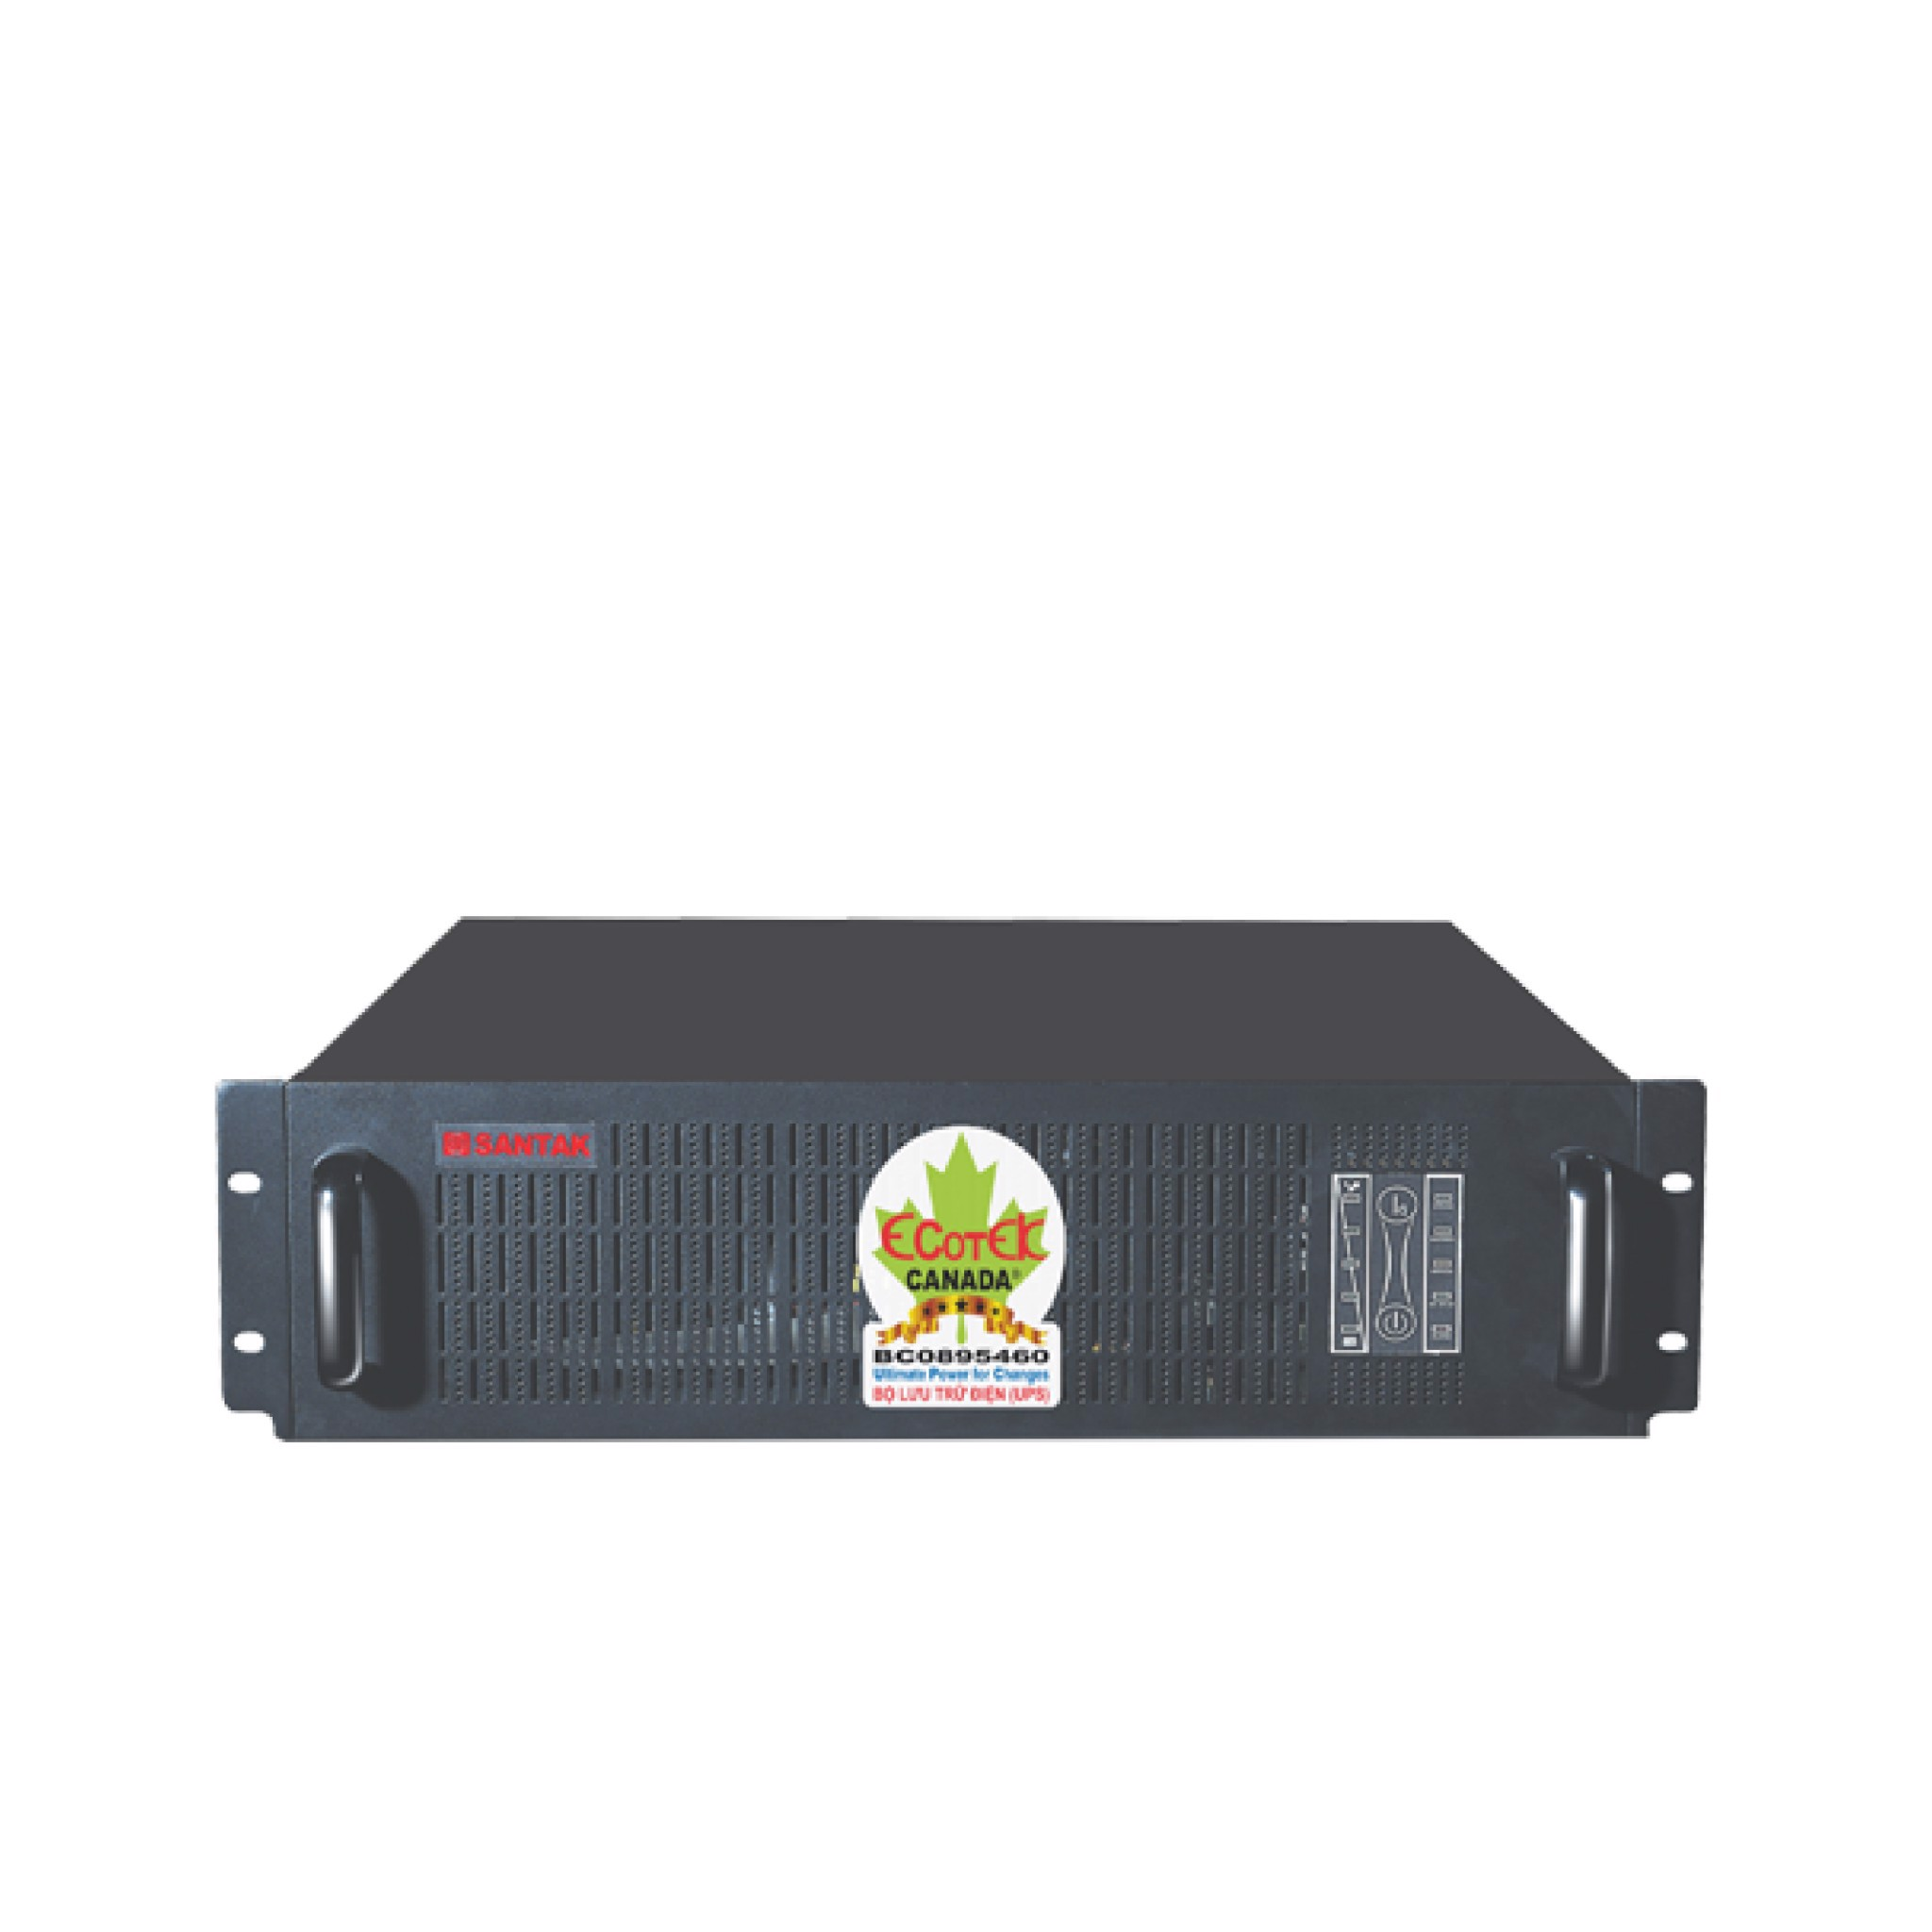 UPS SANTAK TRUE ONLINE RACK MOUNT 1KVA - MODEL C1KR